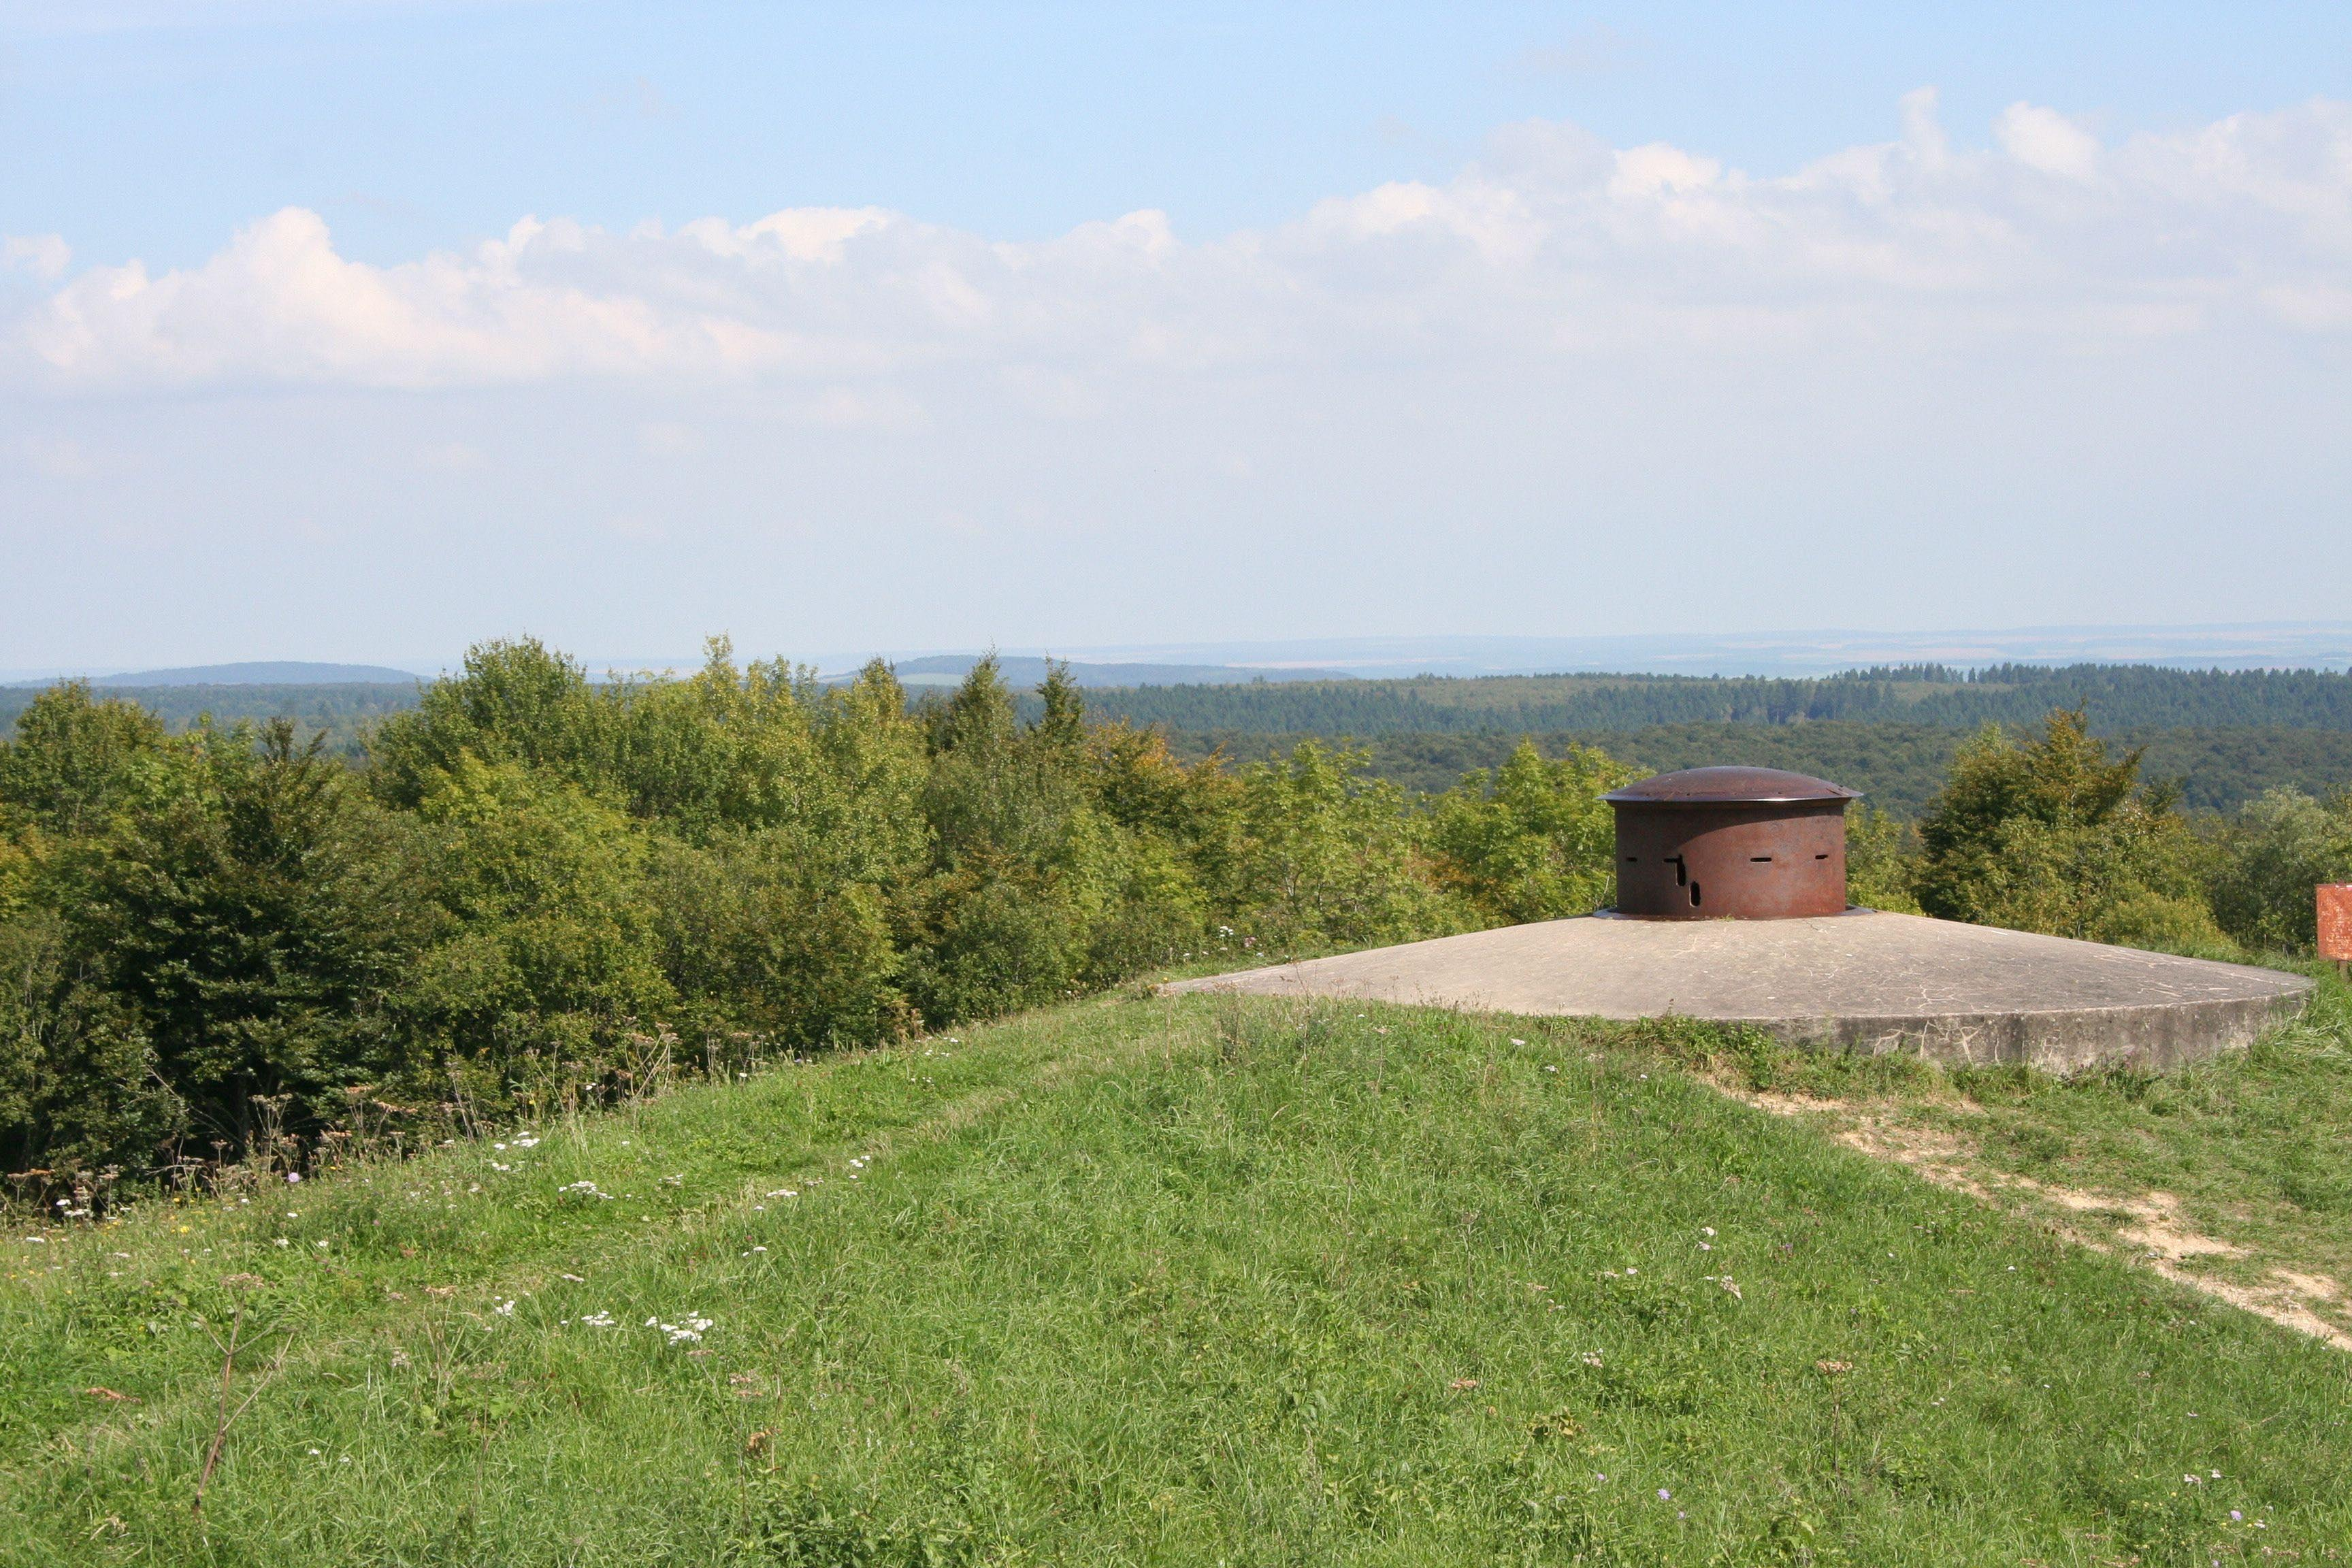 POINT DE VUE - FORT DE DOUAUMONT